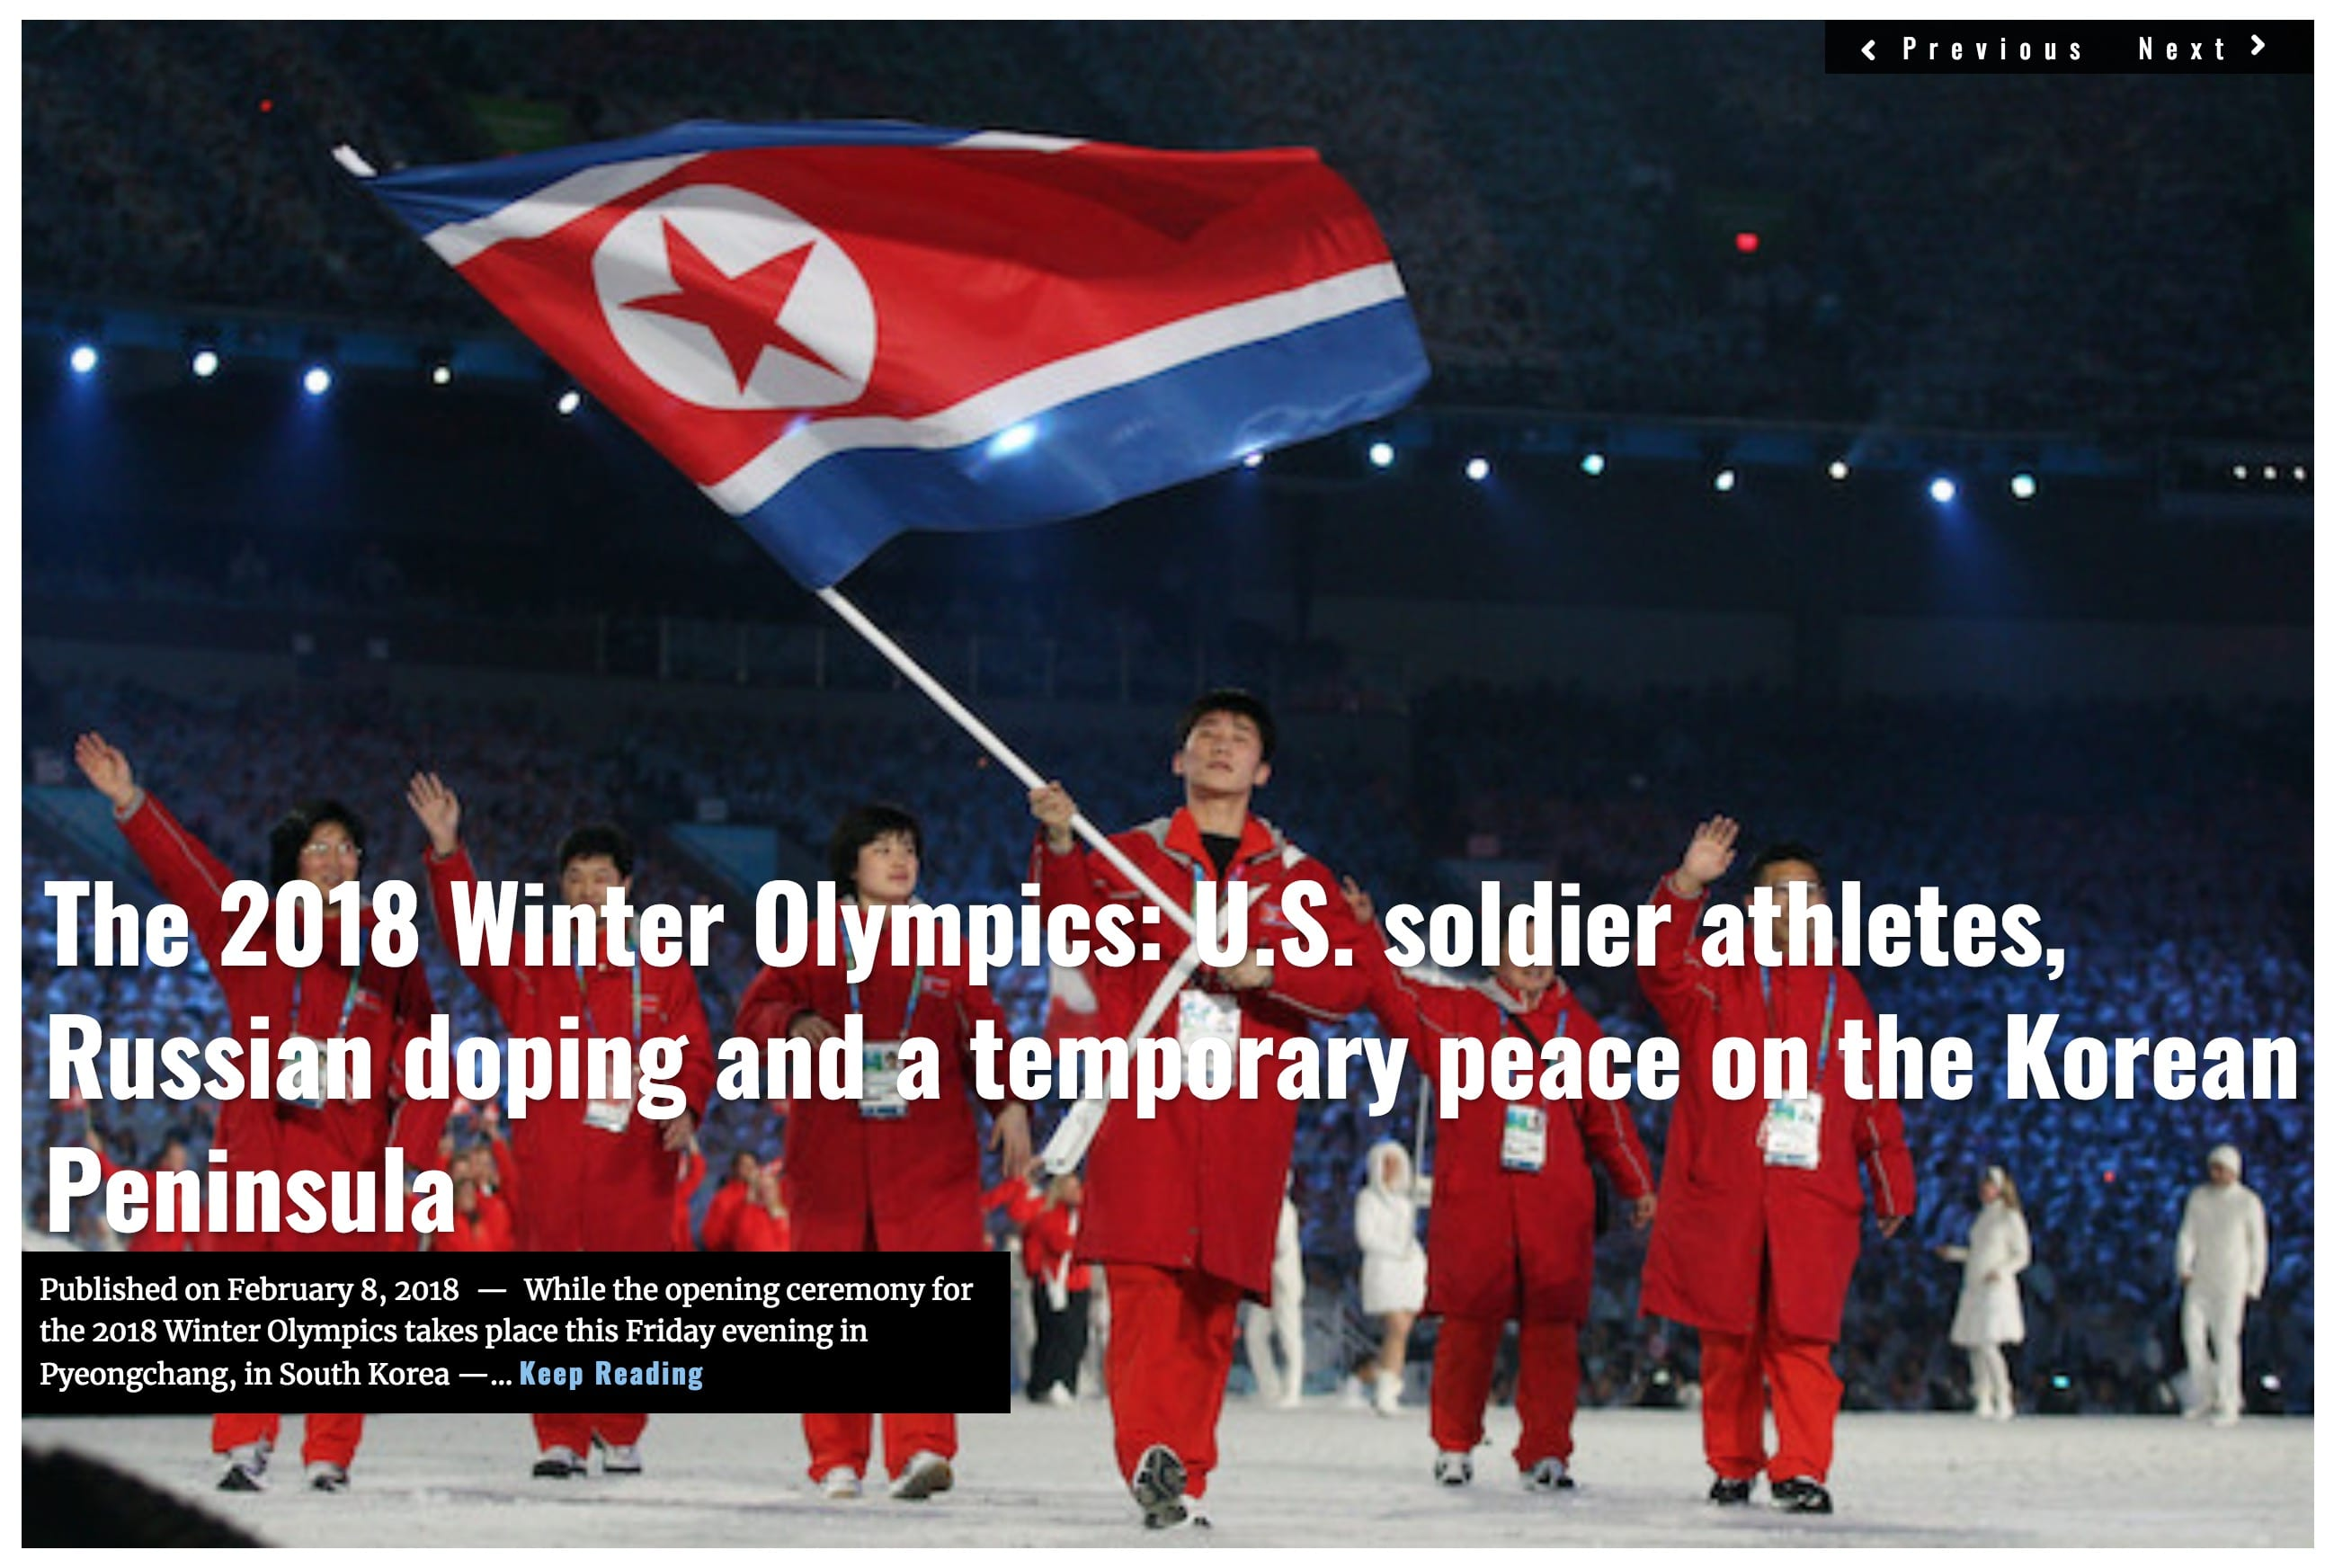 Image Lima Charlie News Headline Winter Olympics FEB 8 2018